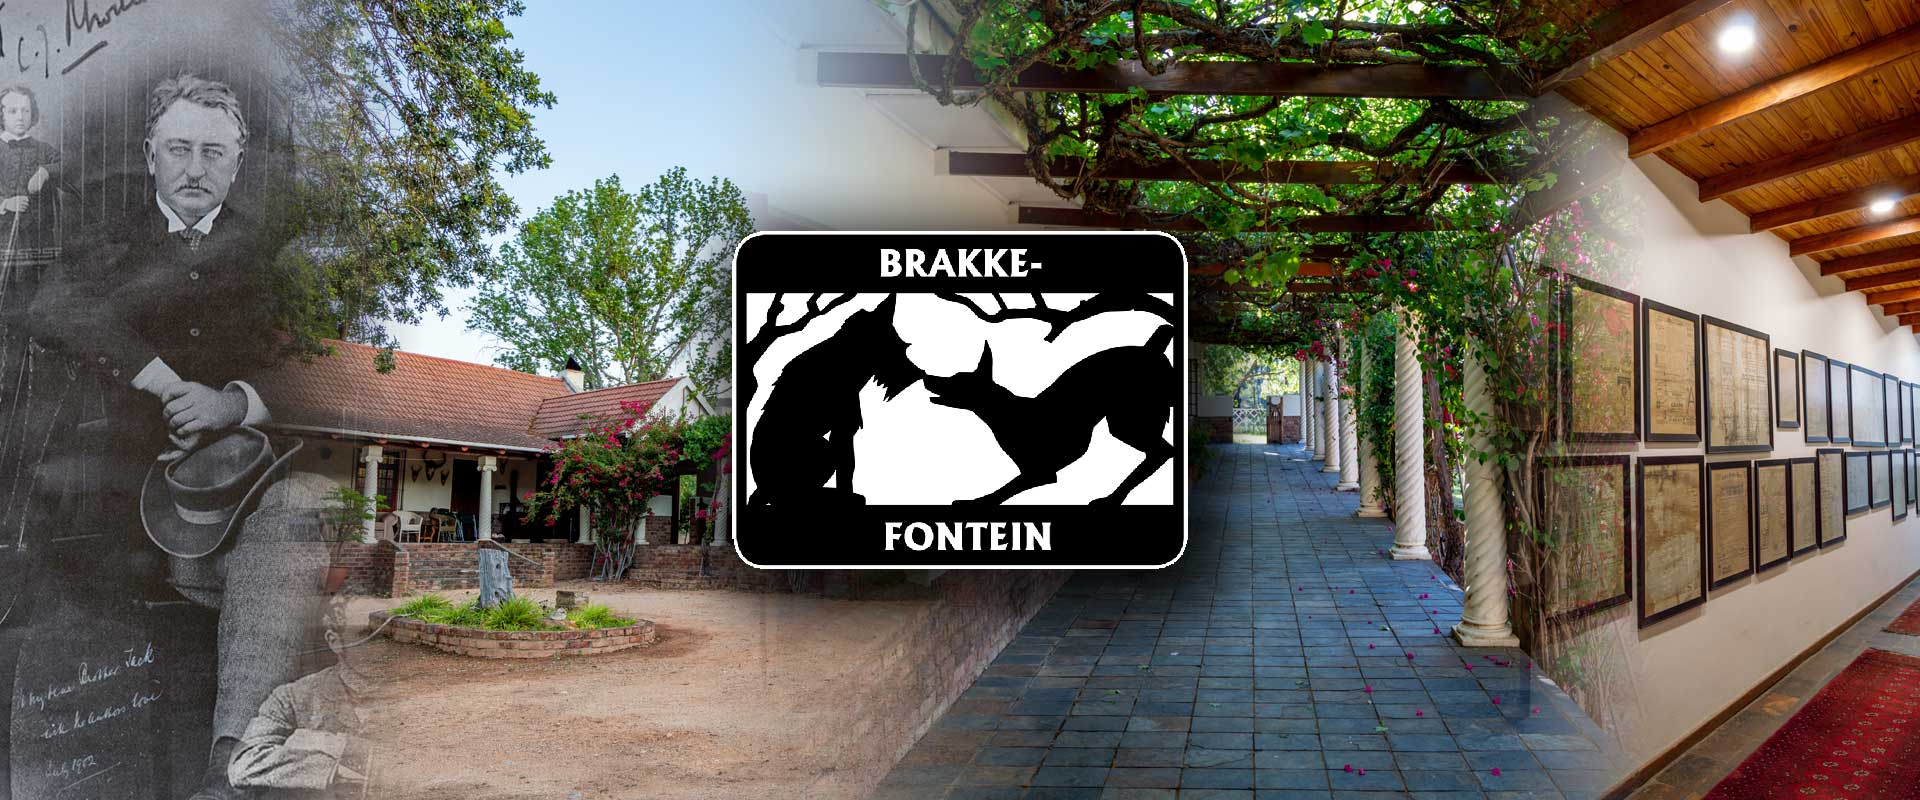 brakkefontein-game-farm